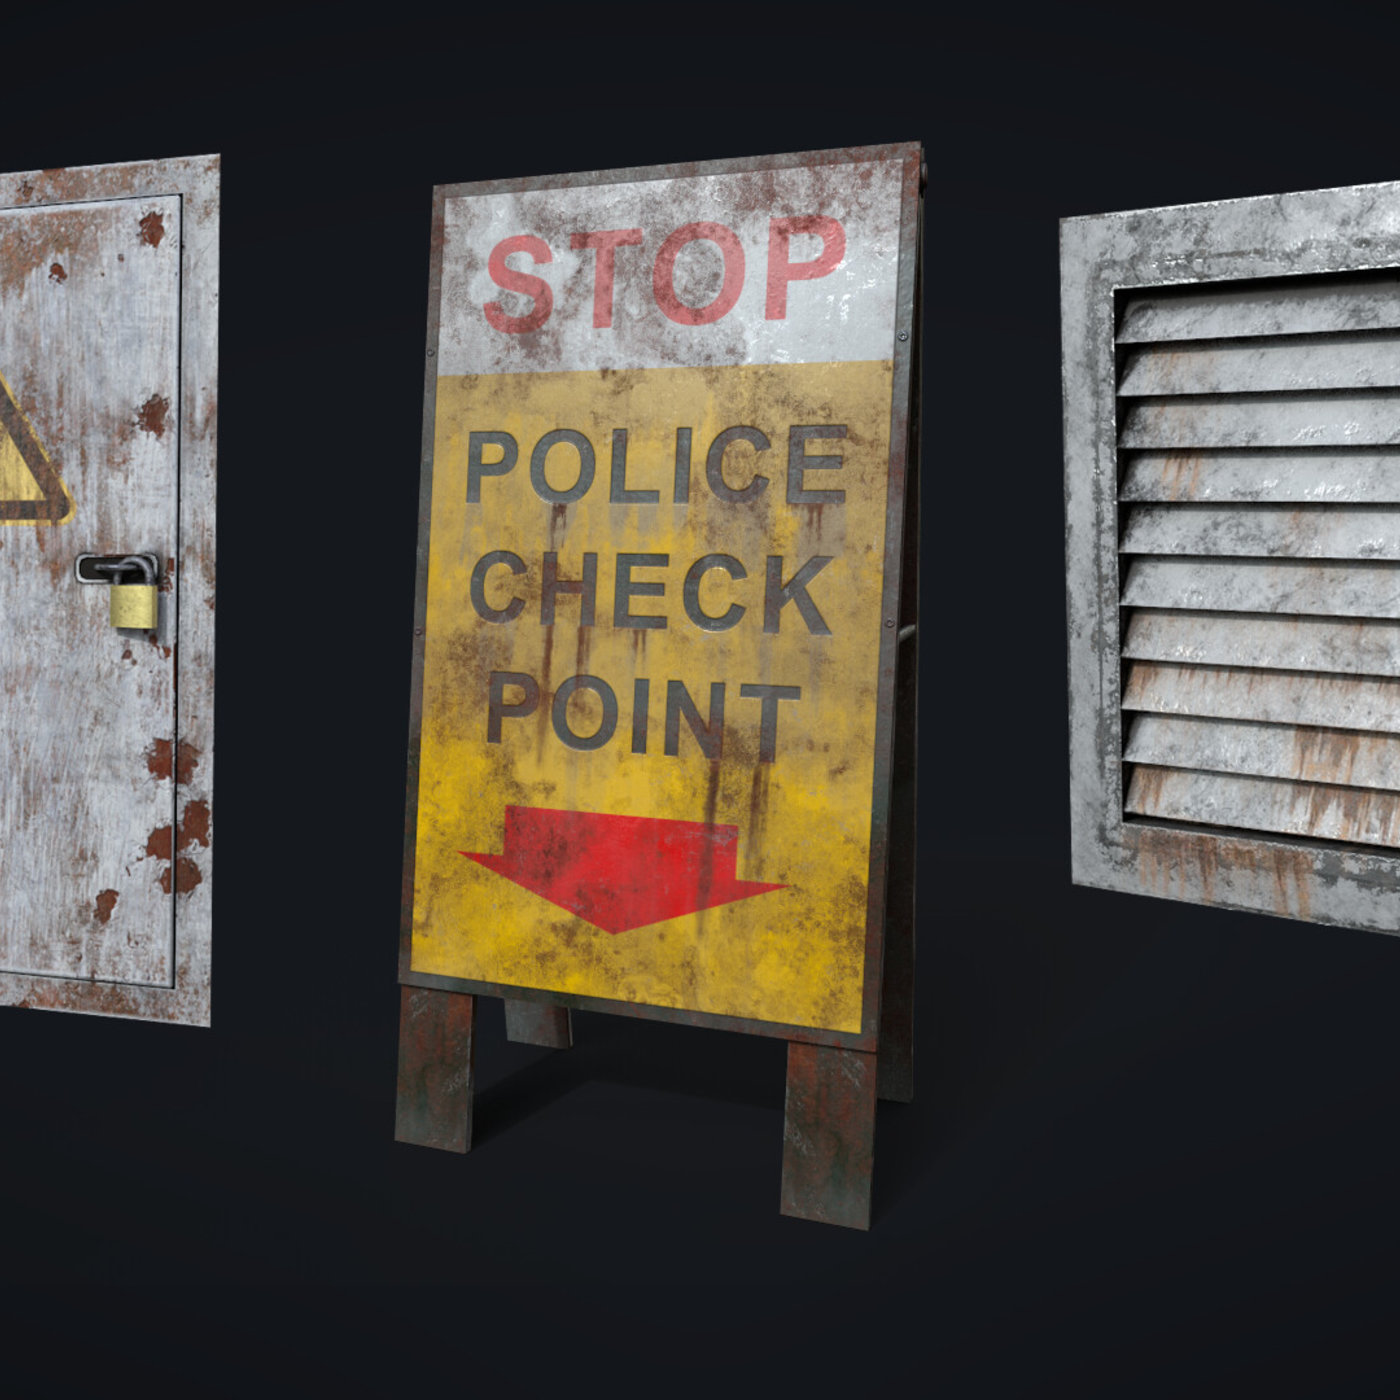 Drug Dealer Simulator Game assets